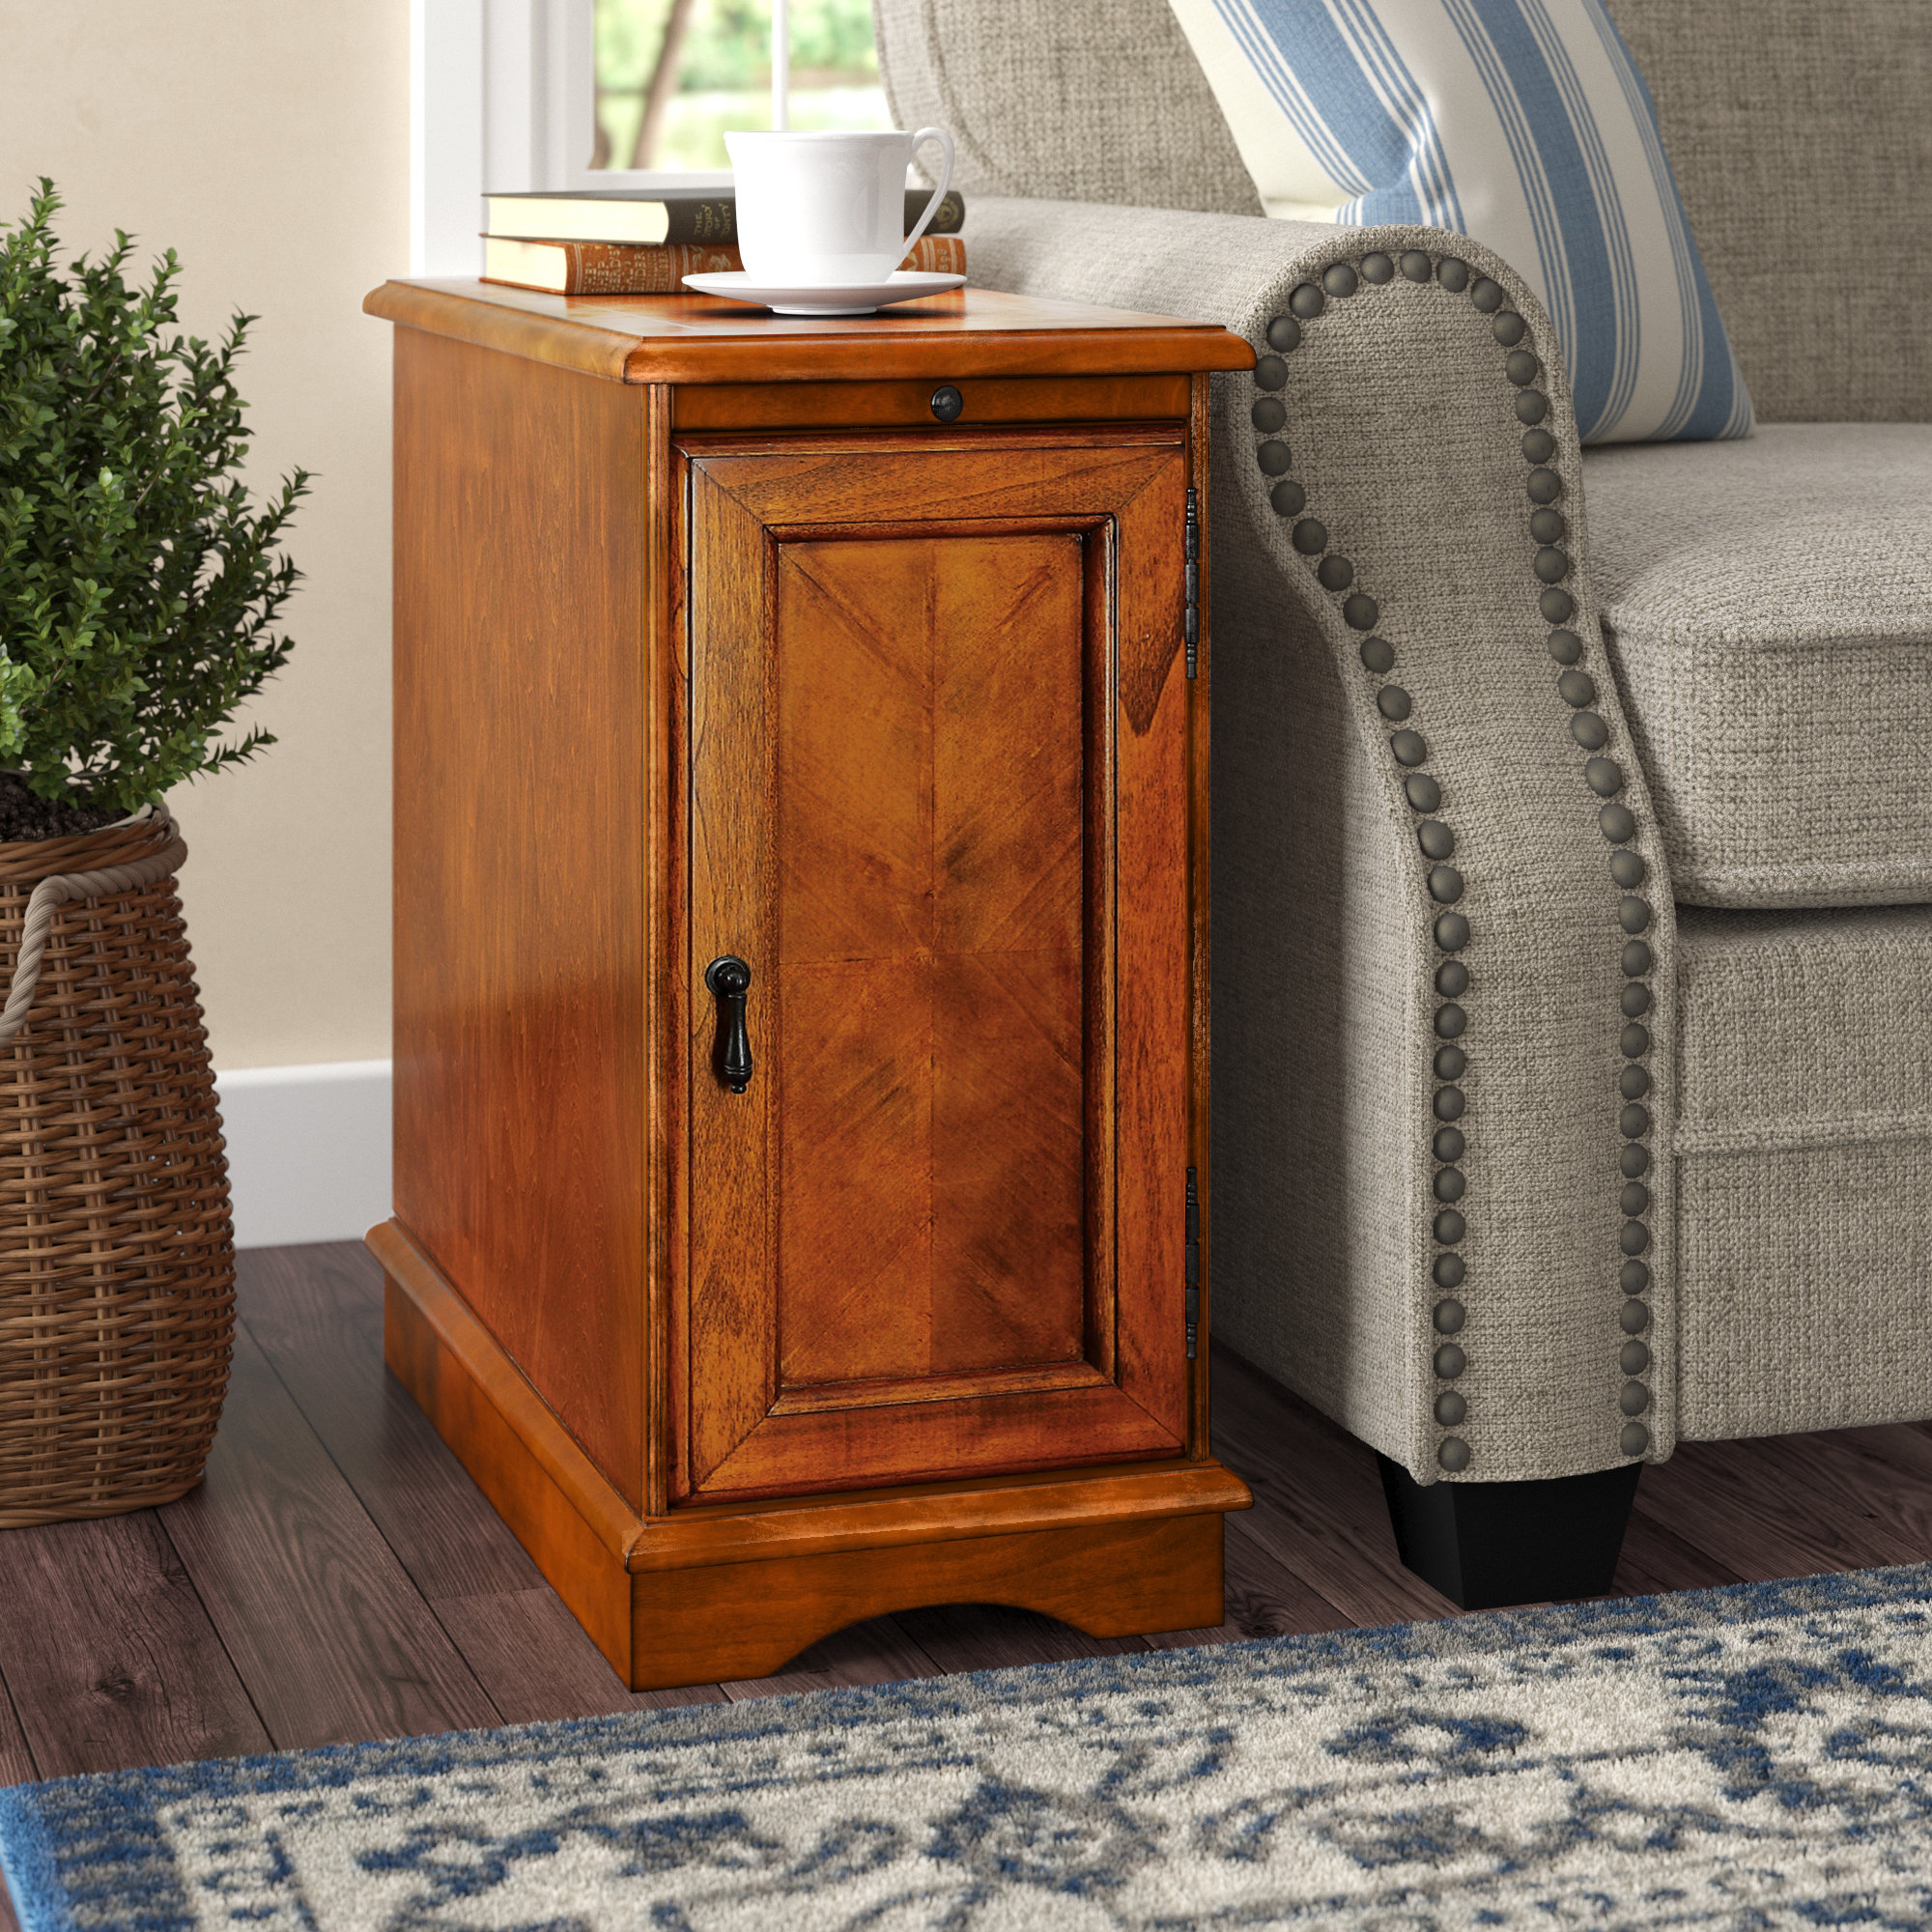 small end tables you love bulmershe table ifrane accent quickview round fitted tablecloths hammary barn door entry carpet trim glass silver side base ideas whole lighting fixtures